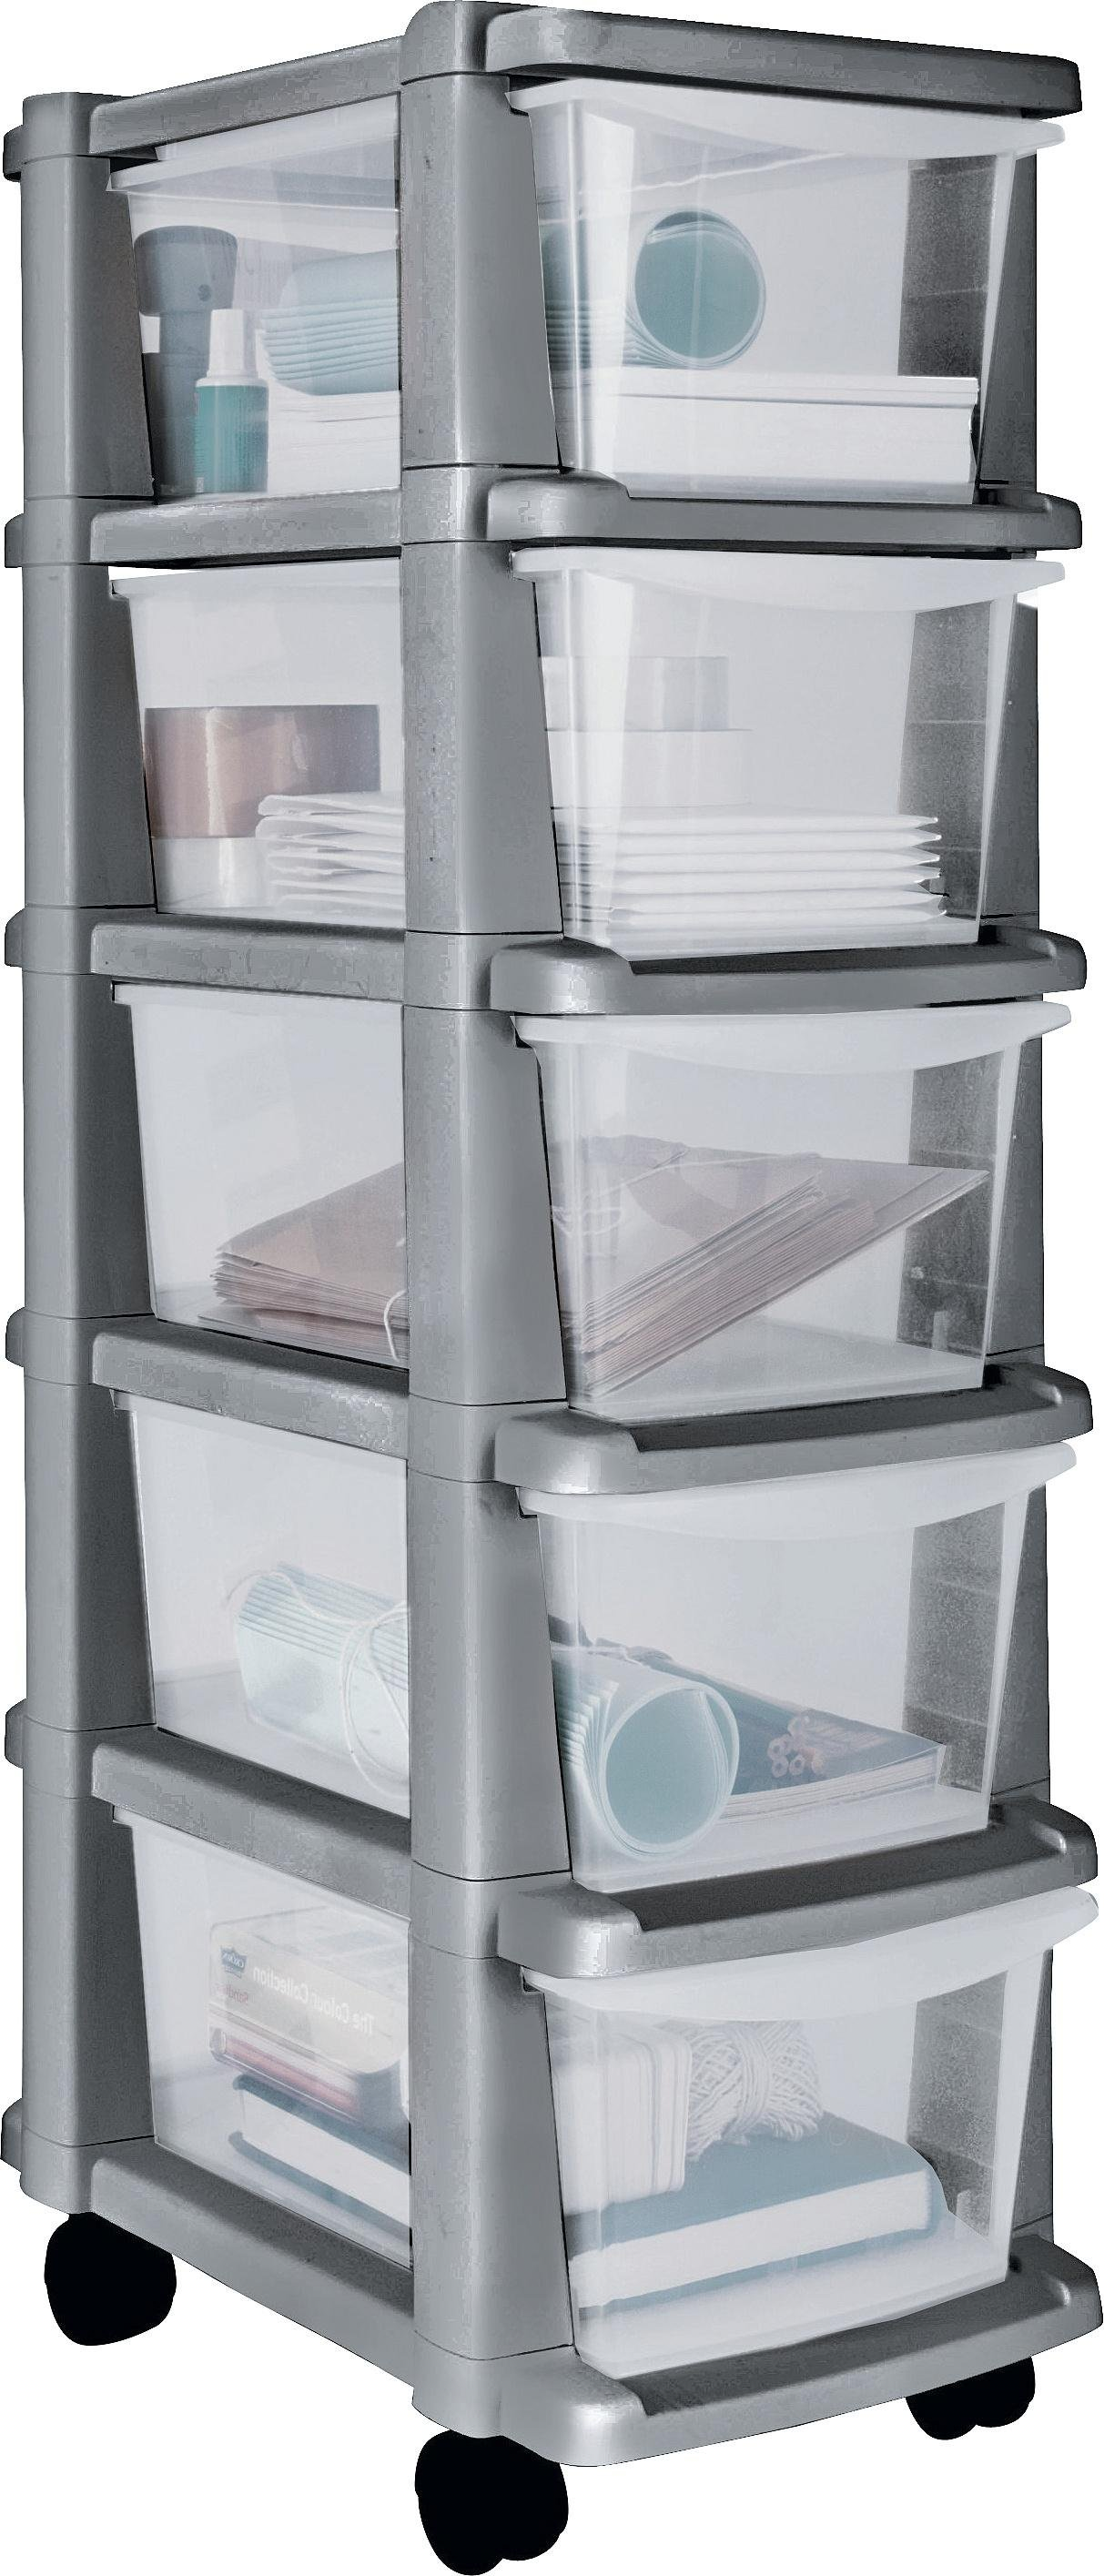 Image of HOME 5 Drawer Plastic Slim Tower Storage Unit - Silver